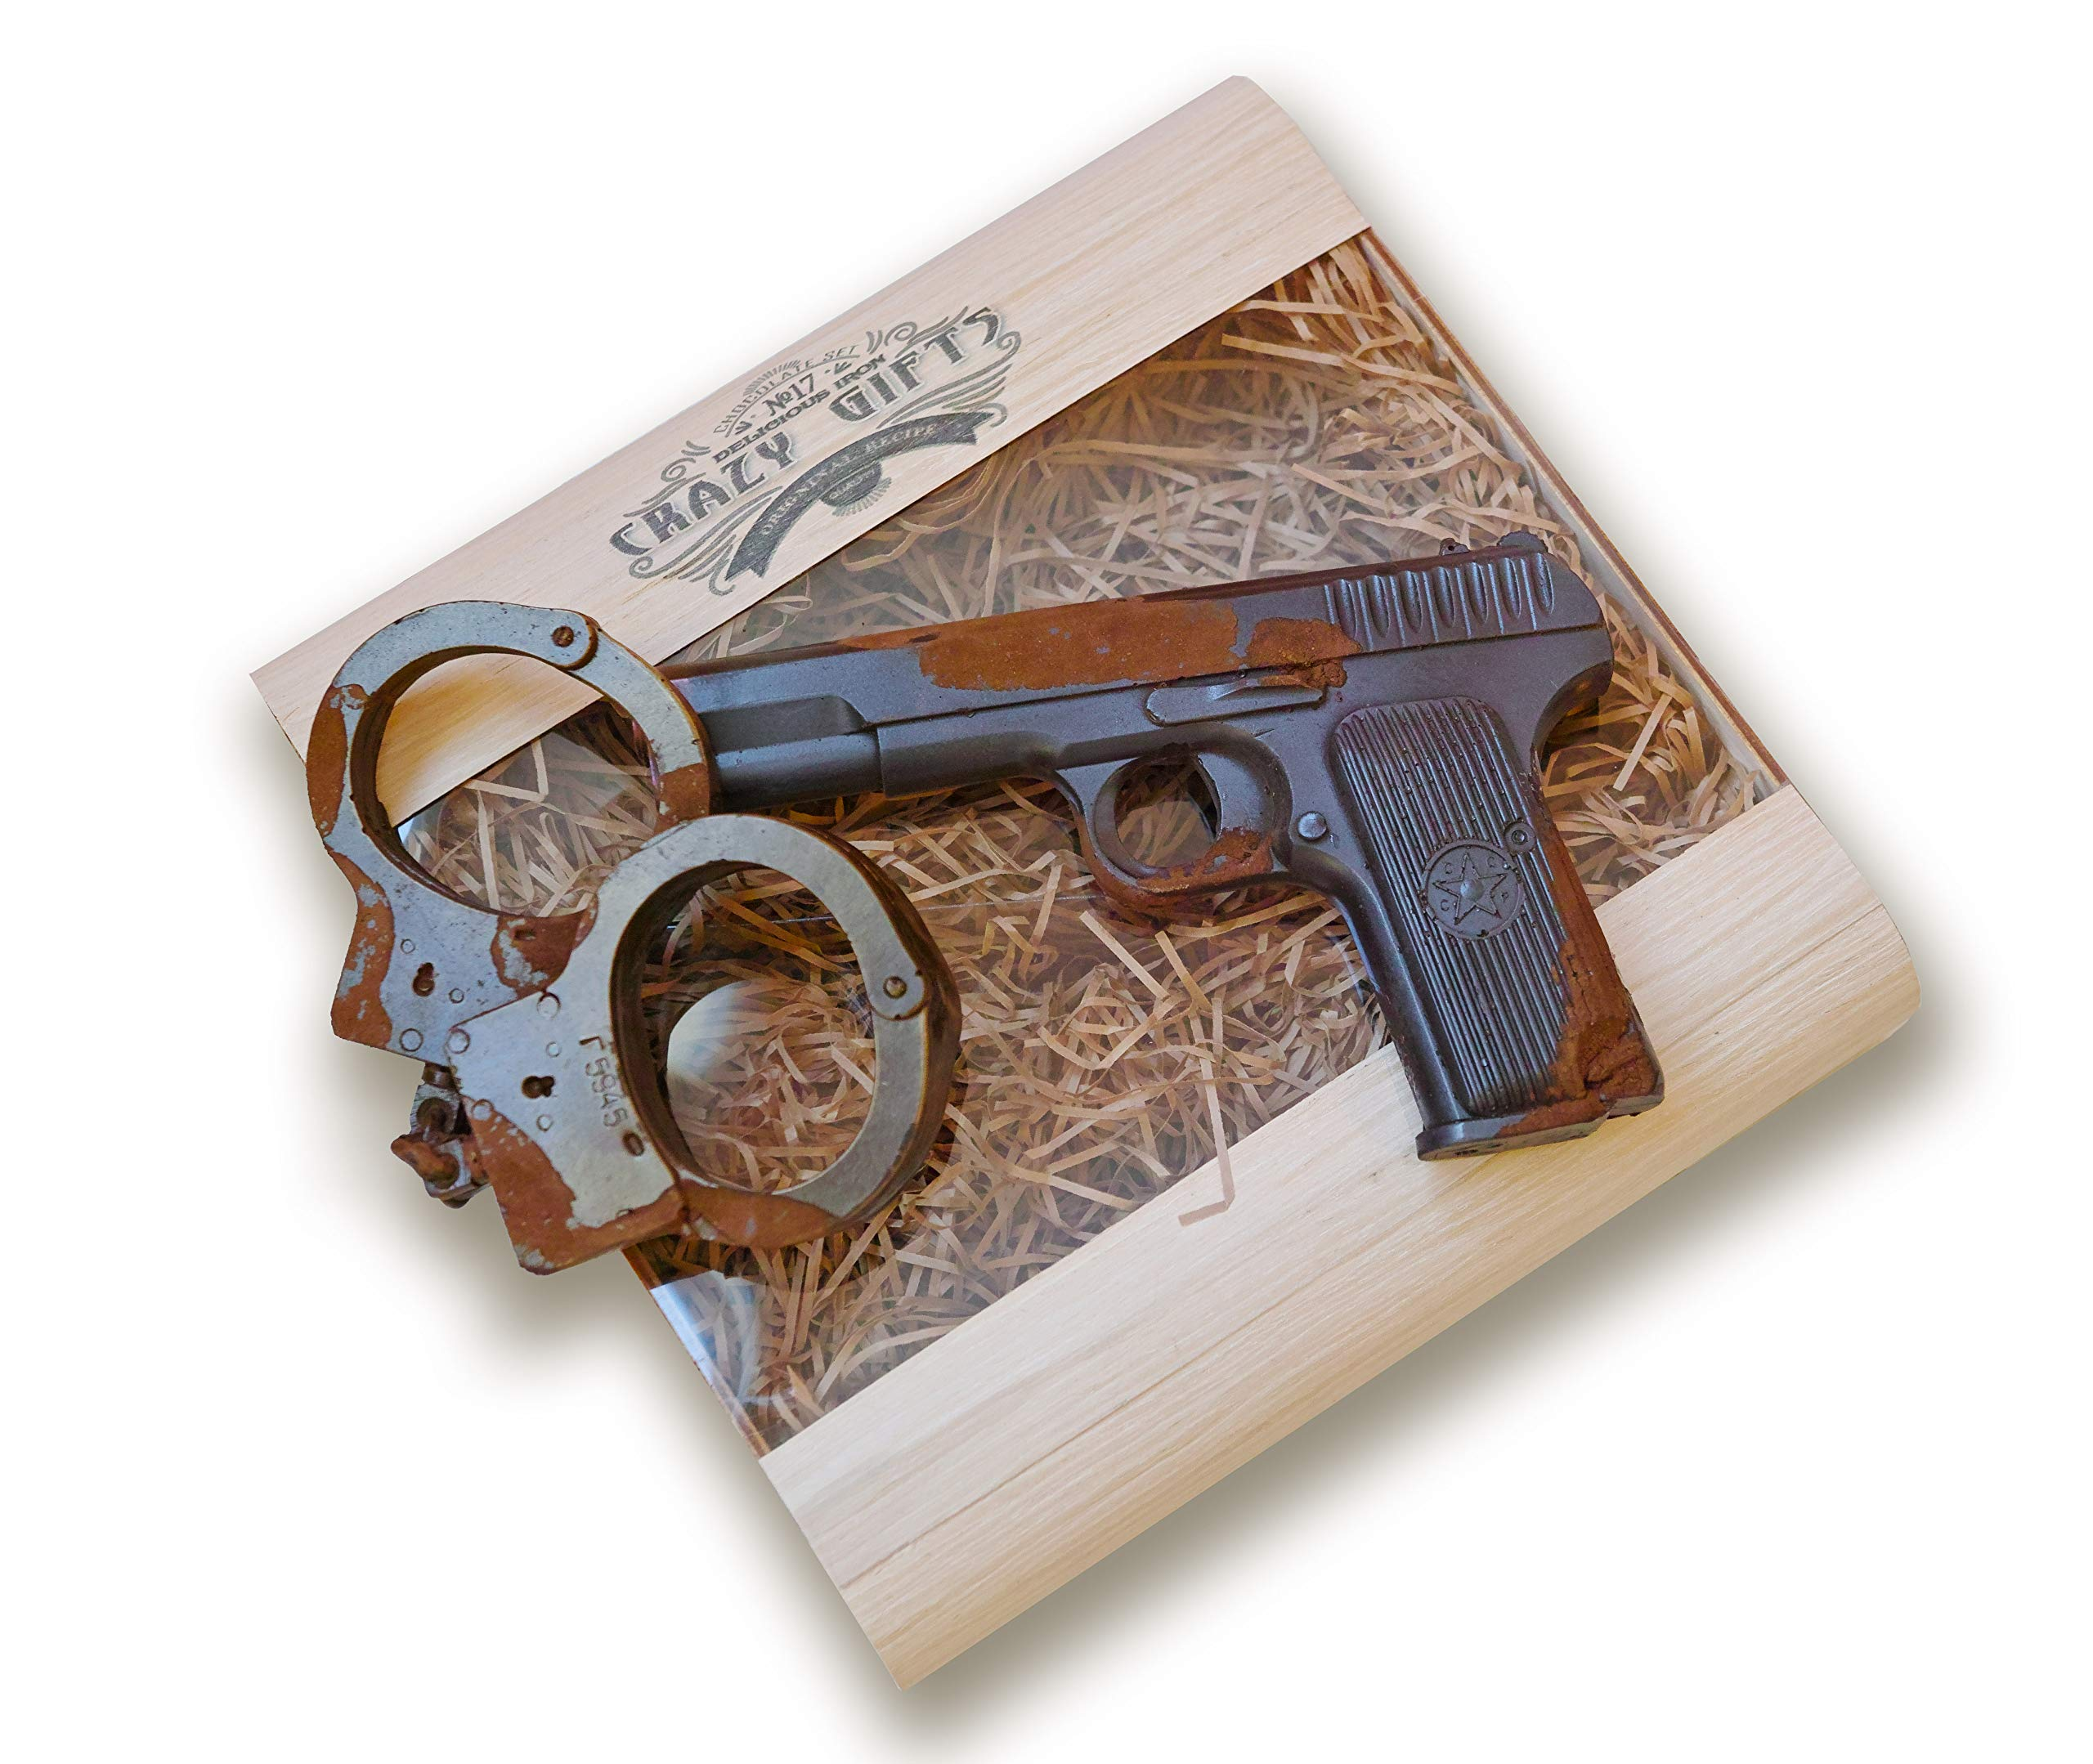 IronChoco Chocolate Pistol and Handcuffs Real Size Solid in Handmade Gift Box, 12.7 oz - Holiday, Sympathy, Birthday Gift for Police Officer by IronChoco